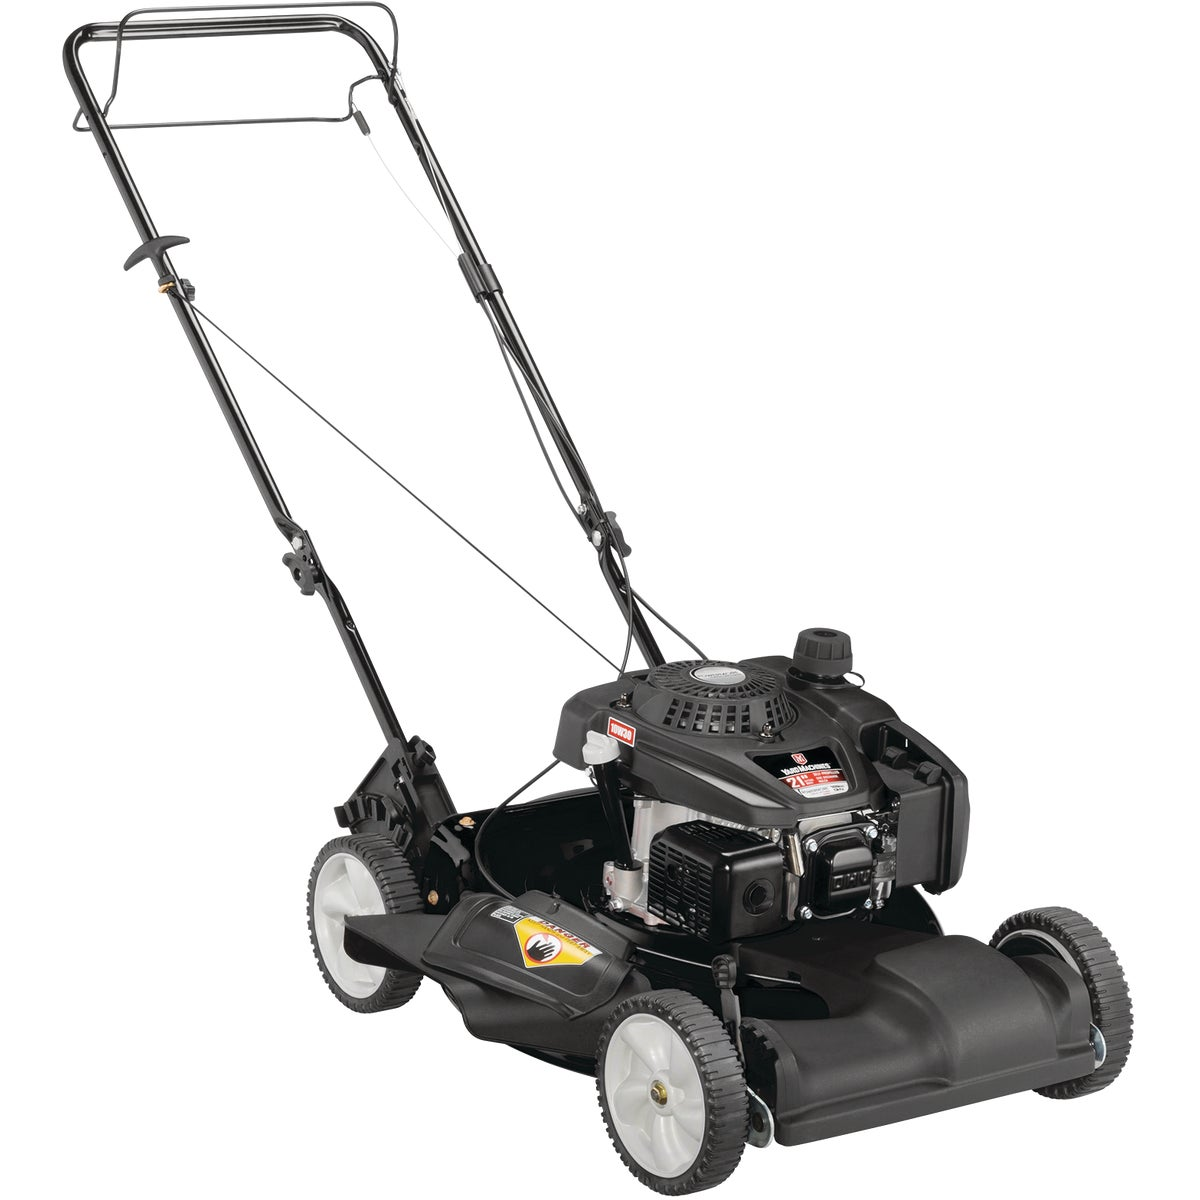 Yard Machines 21 In. Self-Propelled Gas Lawn Mower, 12A-A0M5700